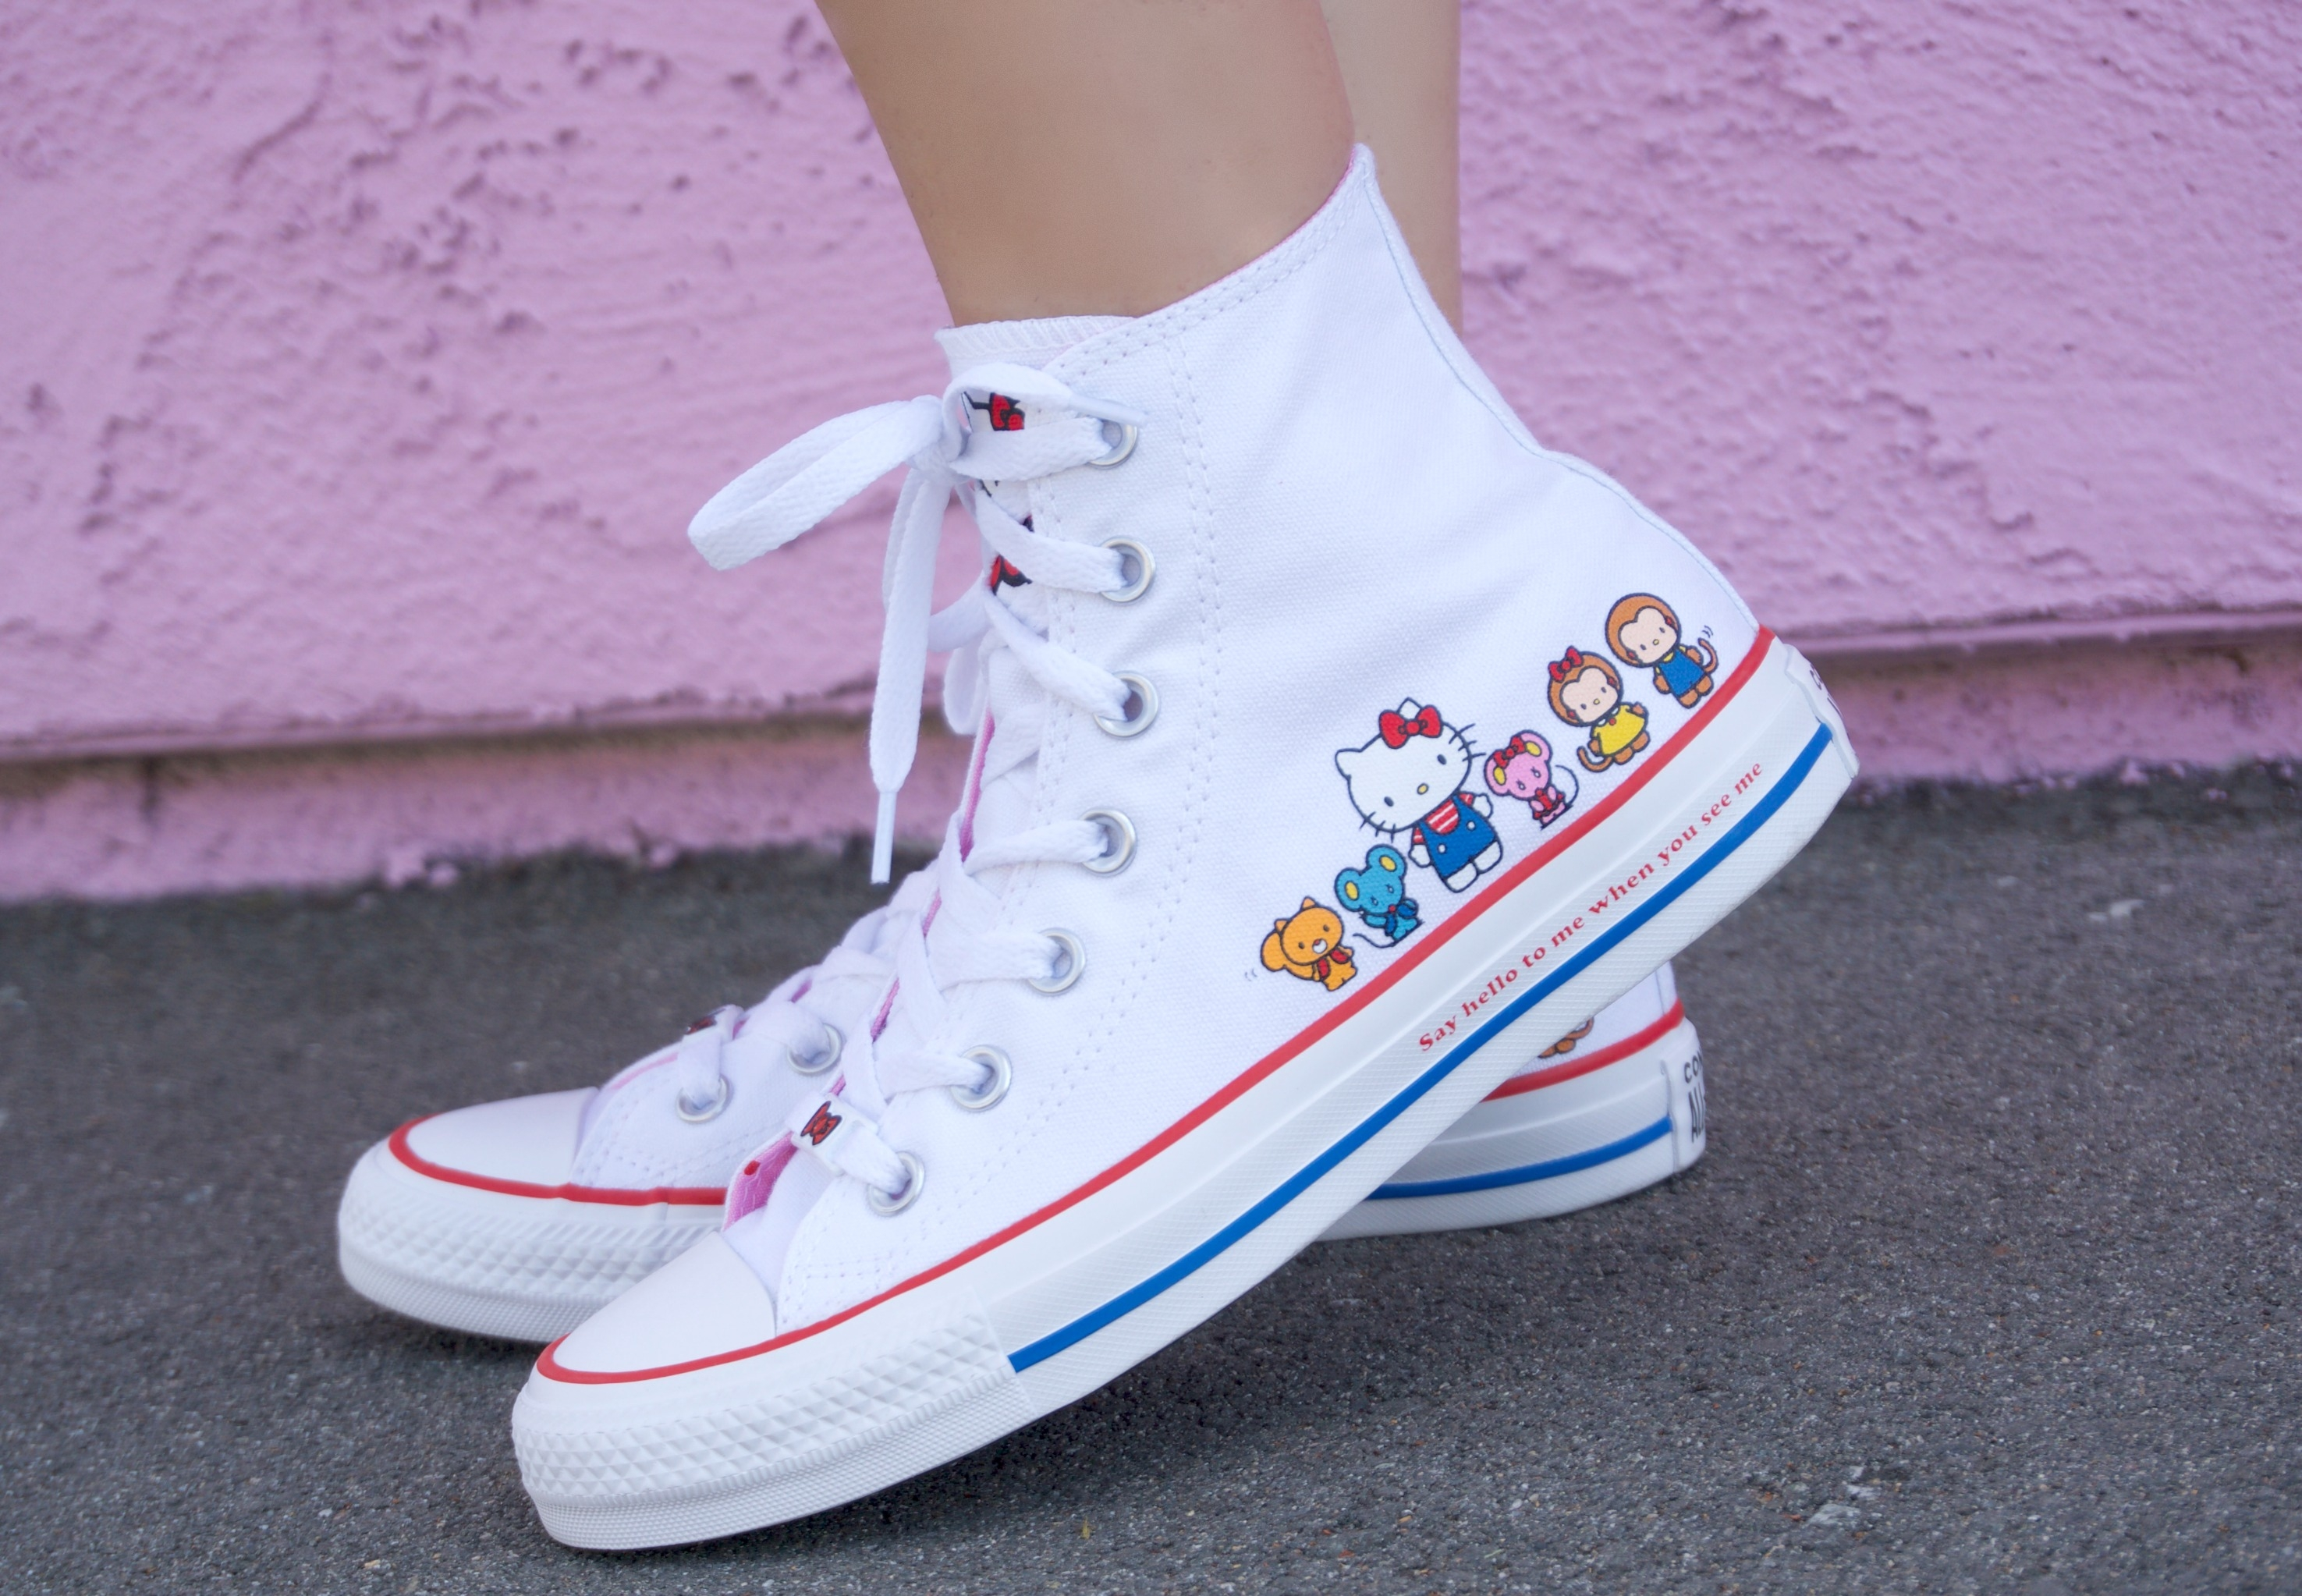 b872945ac Hello Kitty x Converse: Back to School Chic - The Ageless Millennial